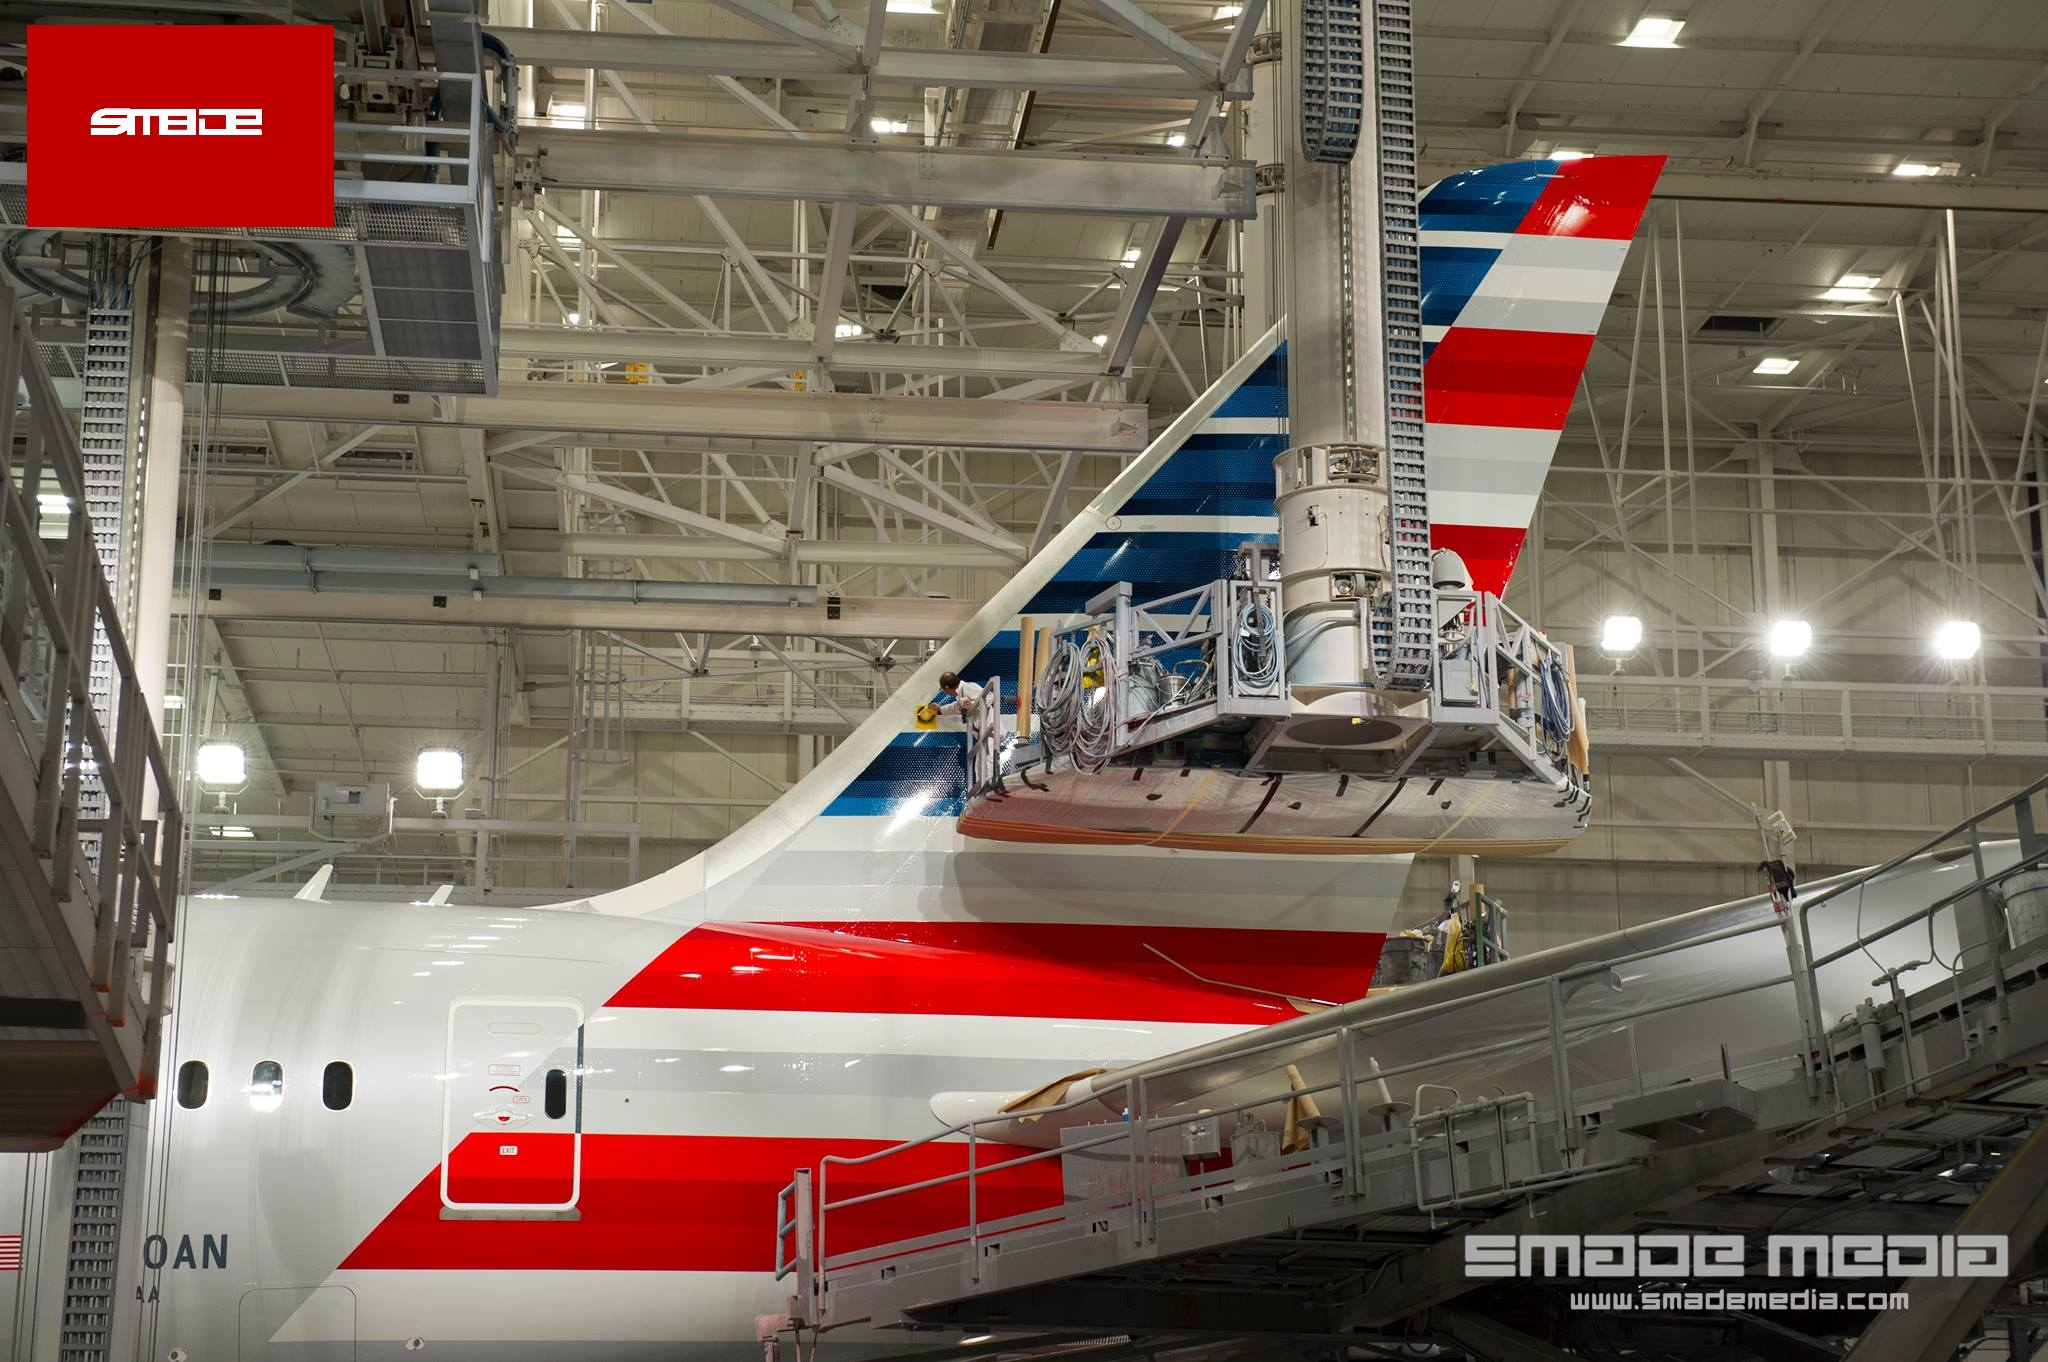 Photo of American Airlines Dreamliner in Paint Shop